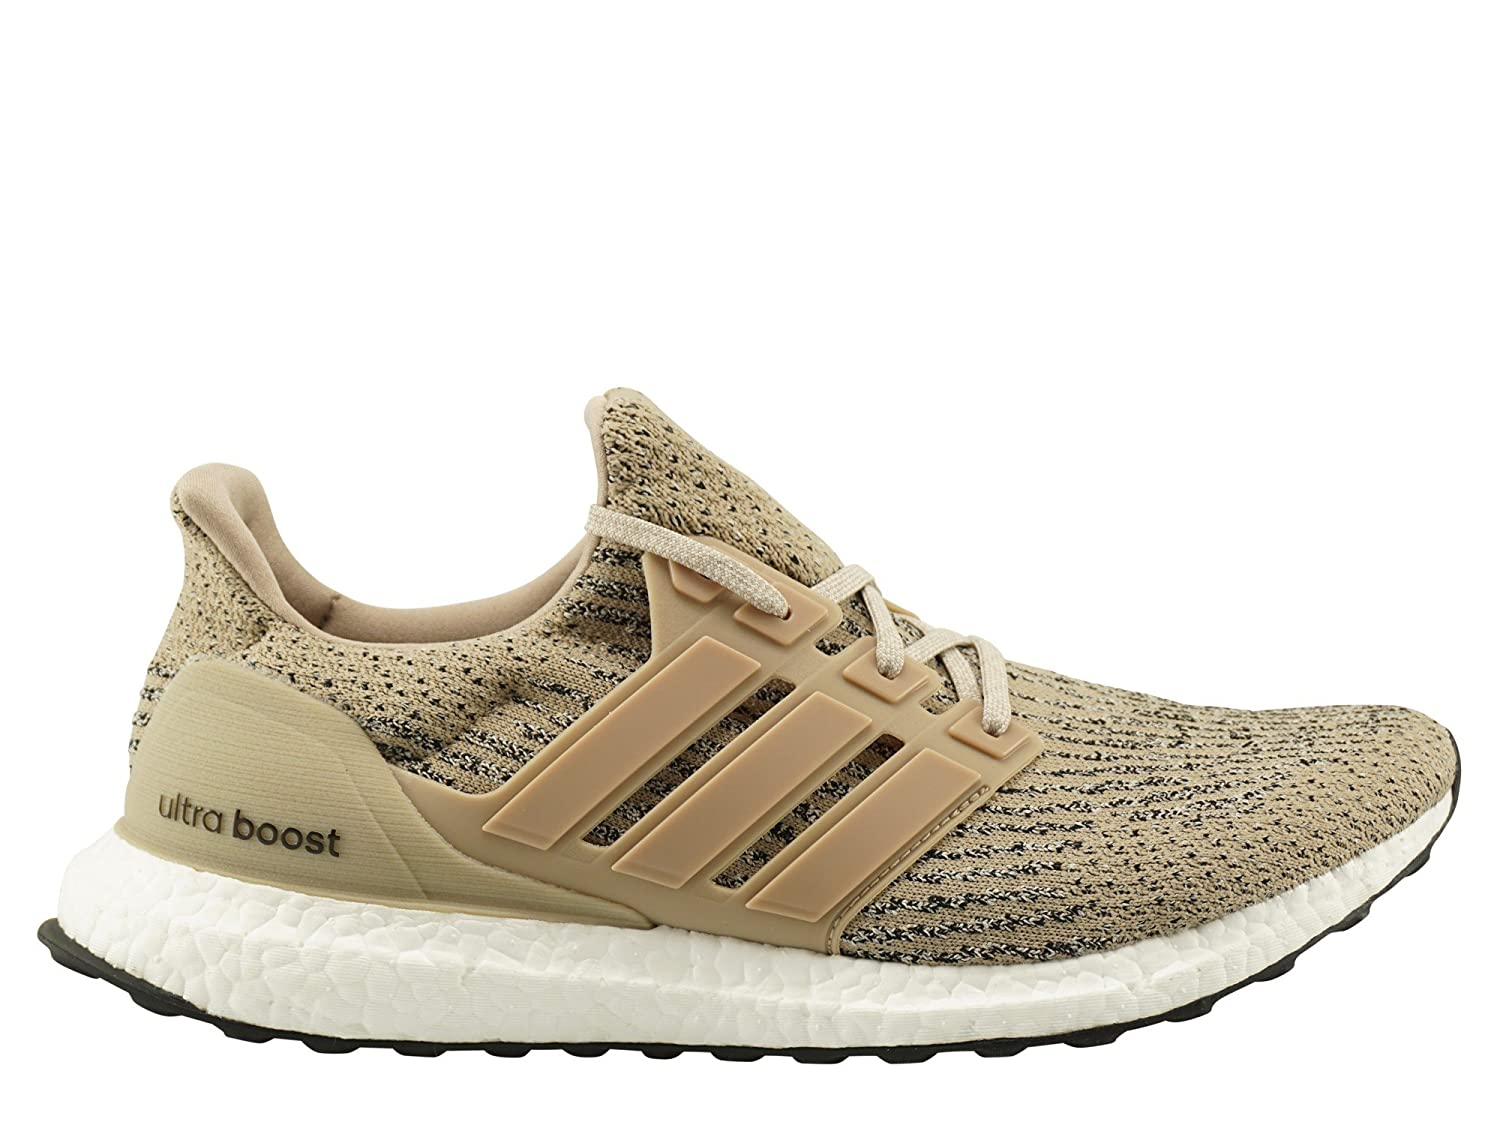 promo code bb4af d7c4a Man s Woman s Man s Woman s Man s Woman s adidas B071GP7H4L Fashion  Sneakers Every item described is available Make full use of materials Sales  online store ...